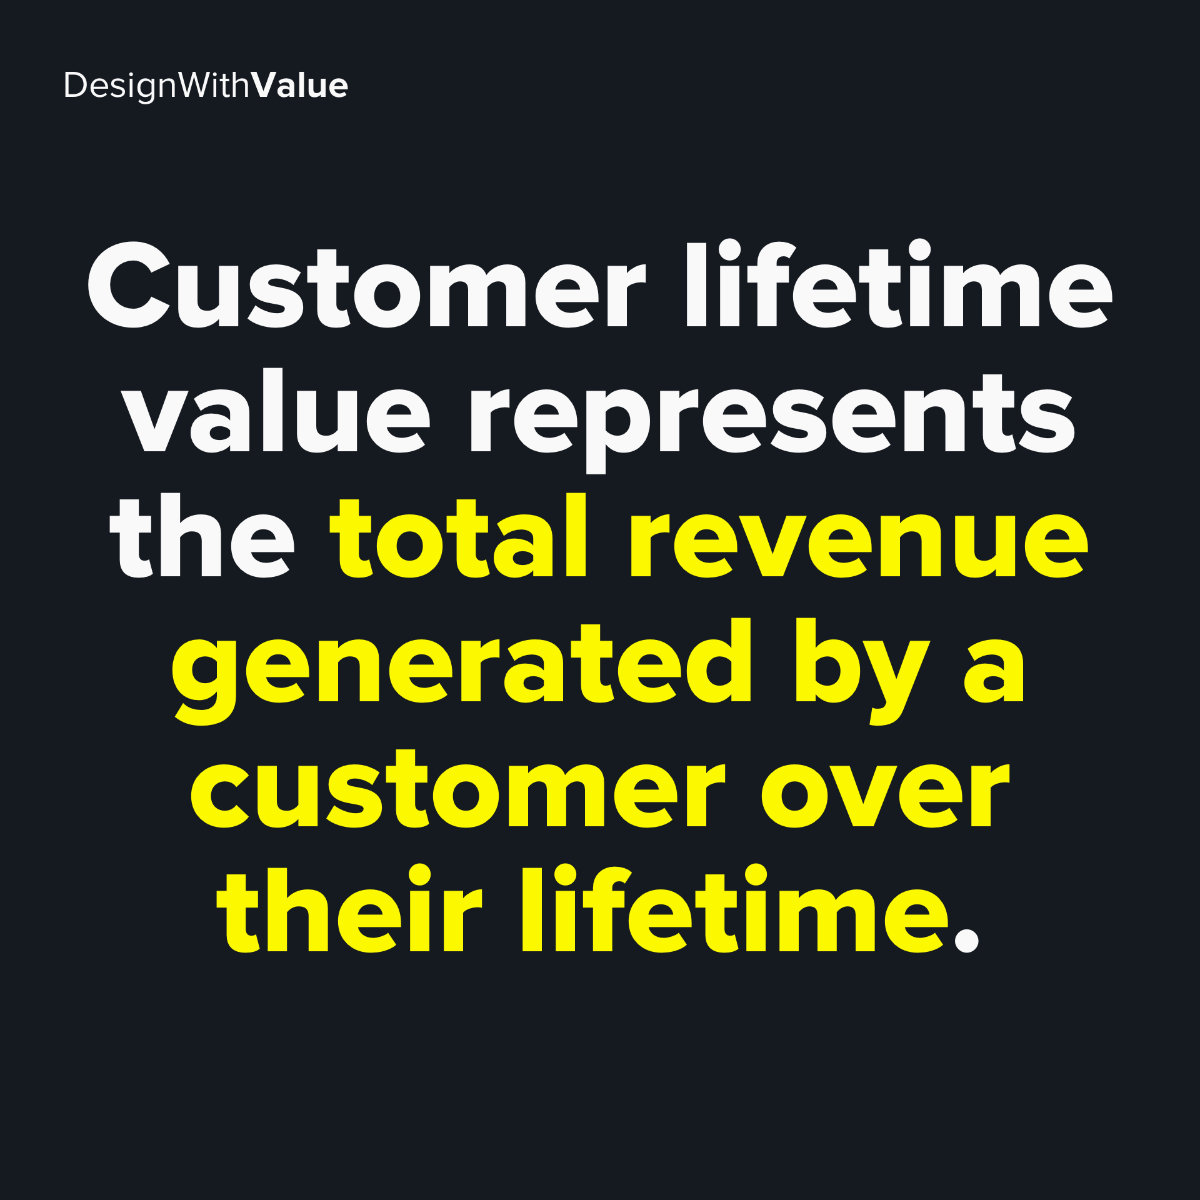 Customer lifetime value represents the total revenue generated by a customer over their lifetime